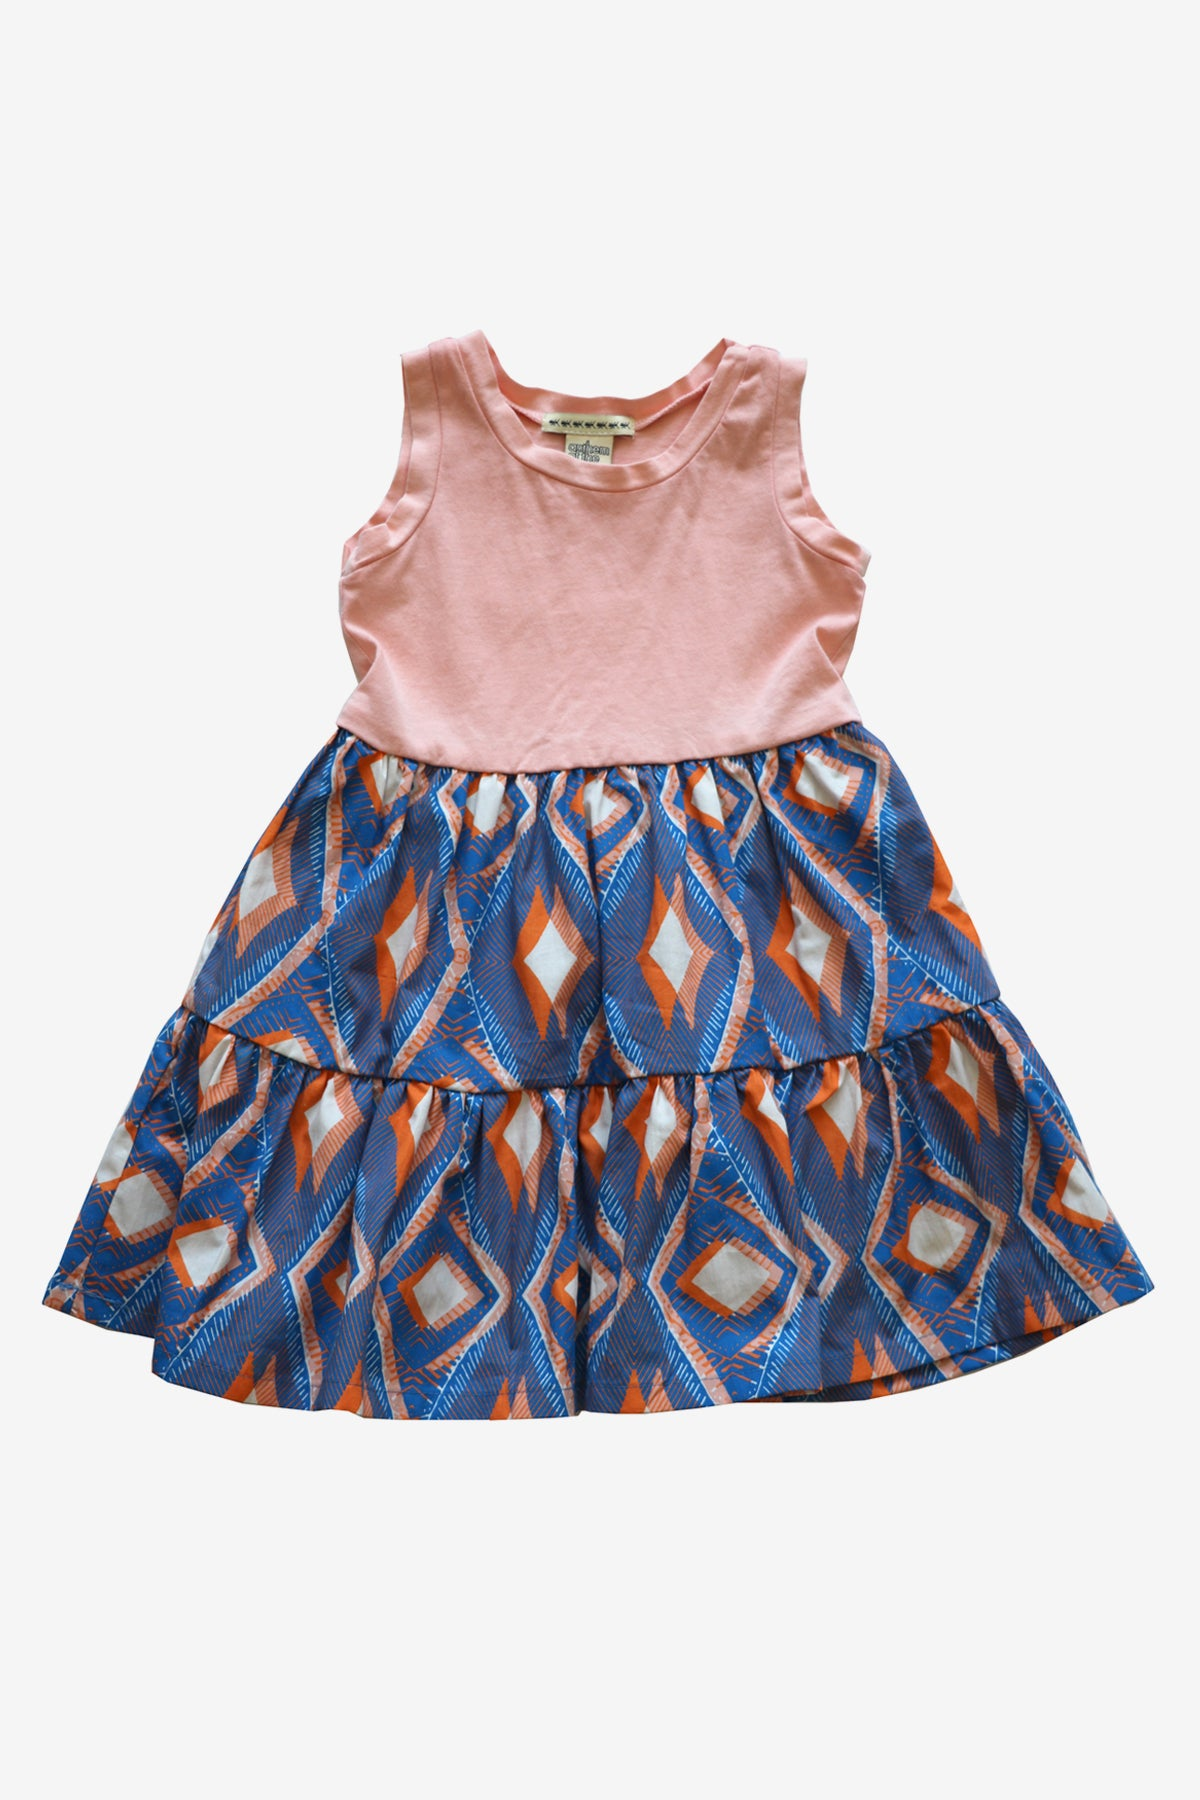 Anthem of the Ants Hopscotch Dress - Papaya